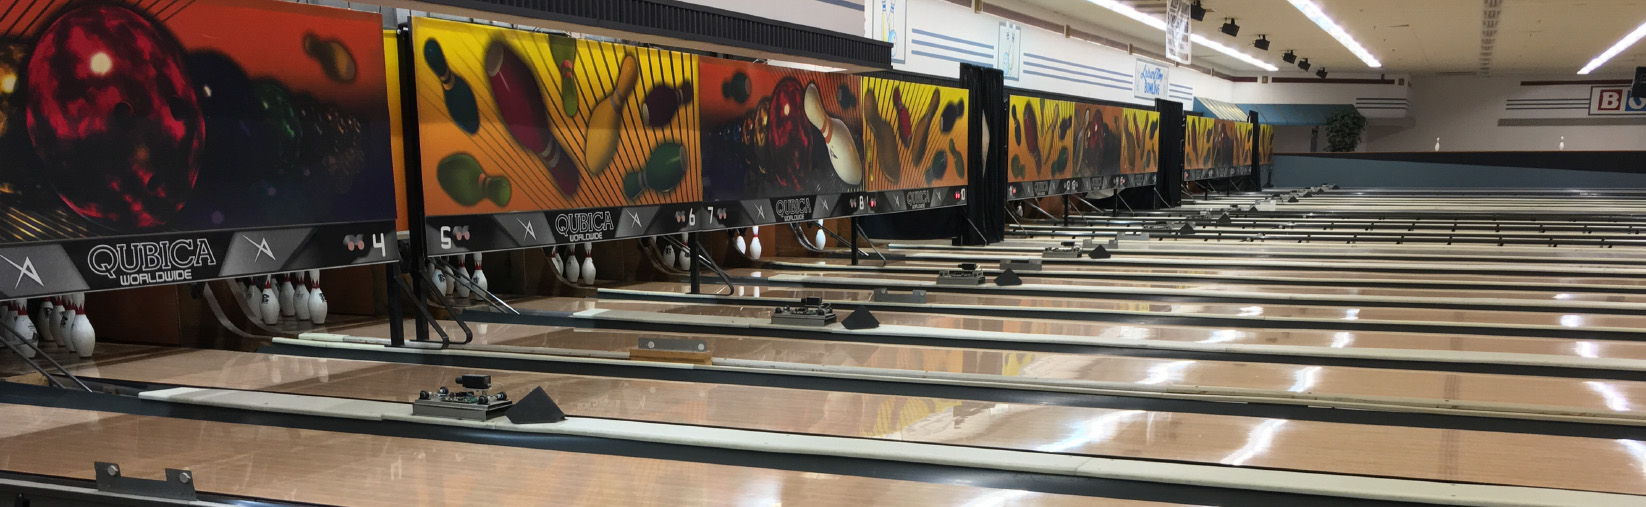 Contact Us Leisure Time Bowling